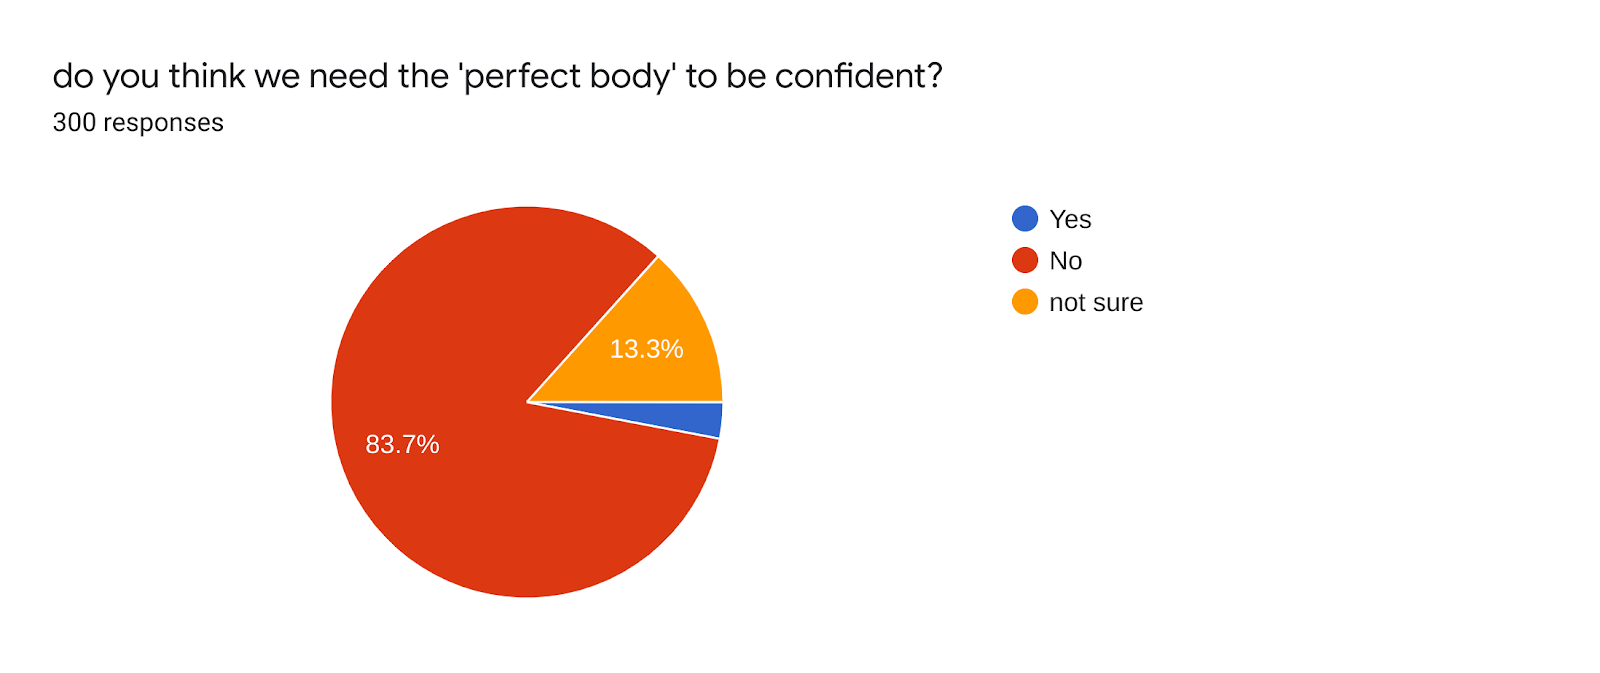 Forms response chart. Question title: do you think we need the 'perfect body' to be confident?. Number of responses: 300 responses.